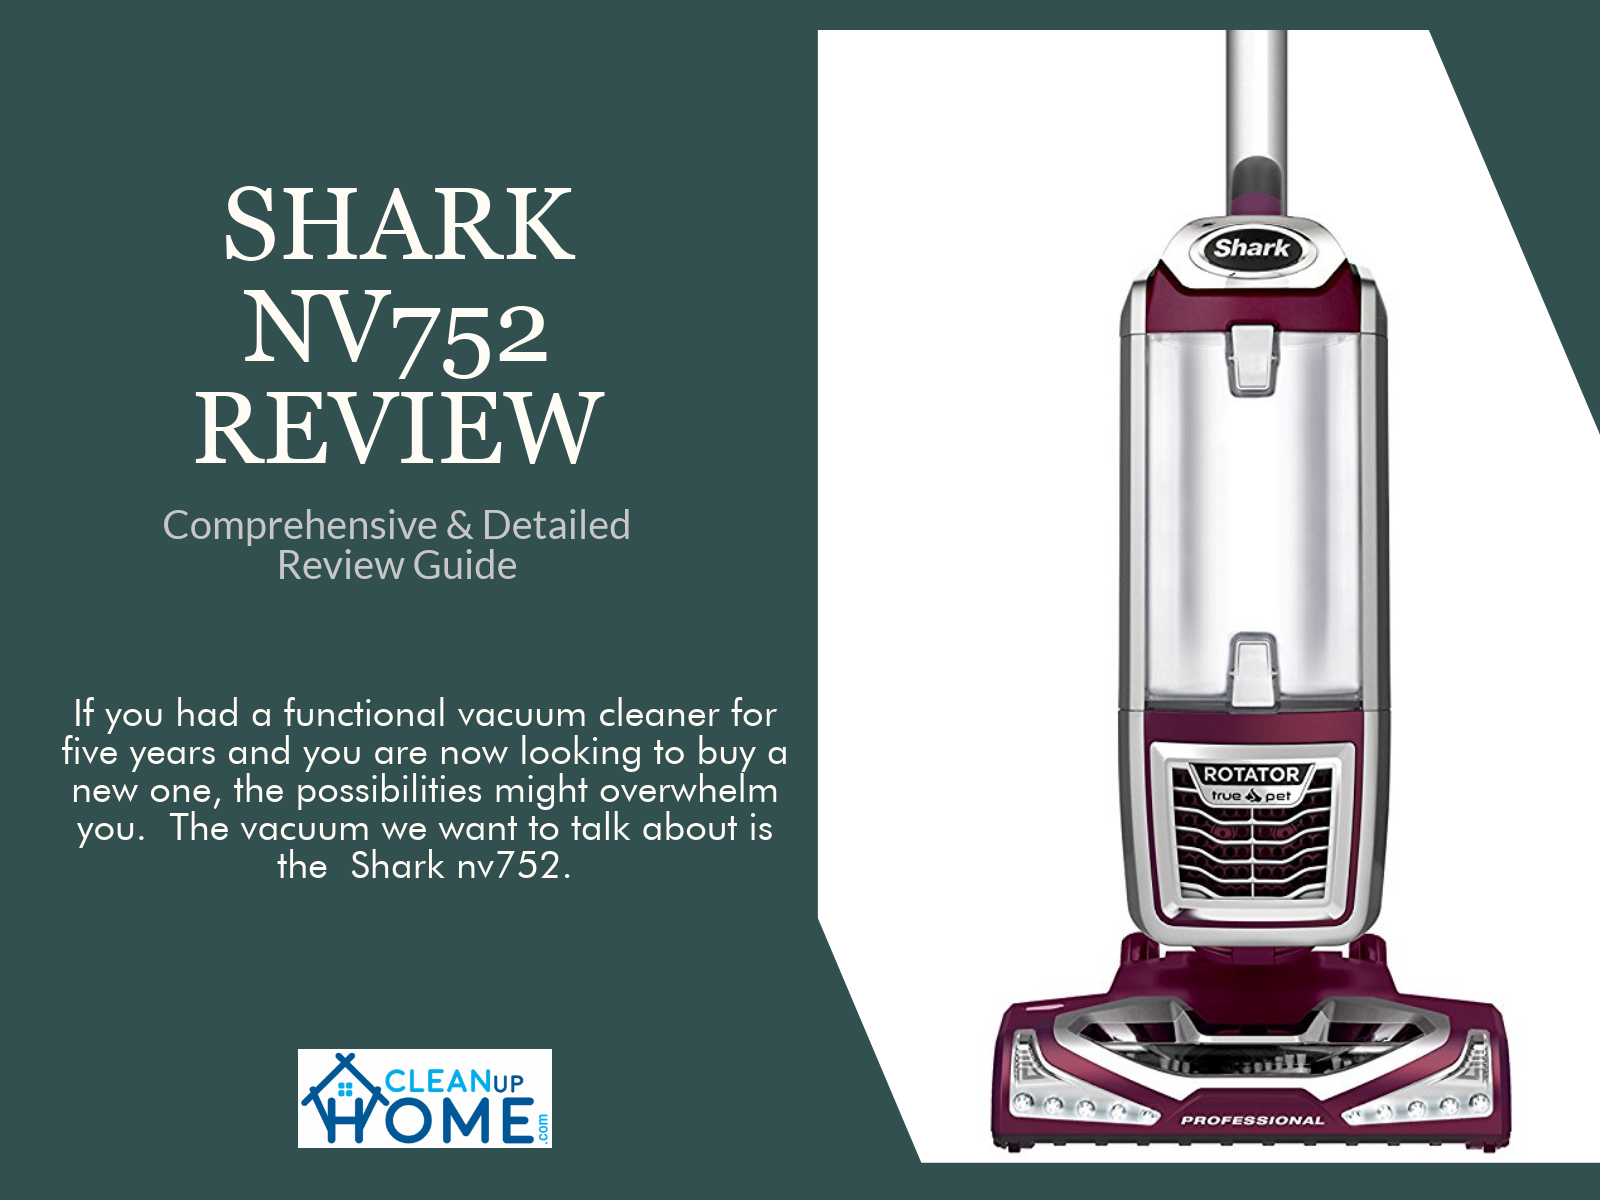 Shark nv752 review